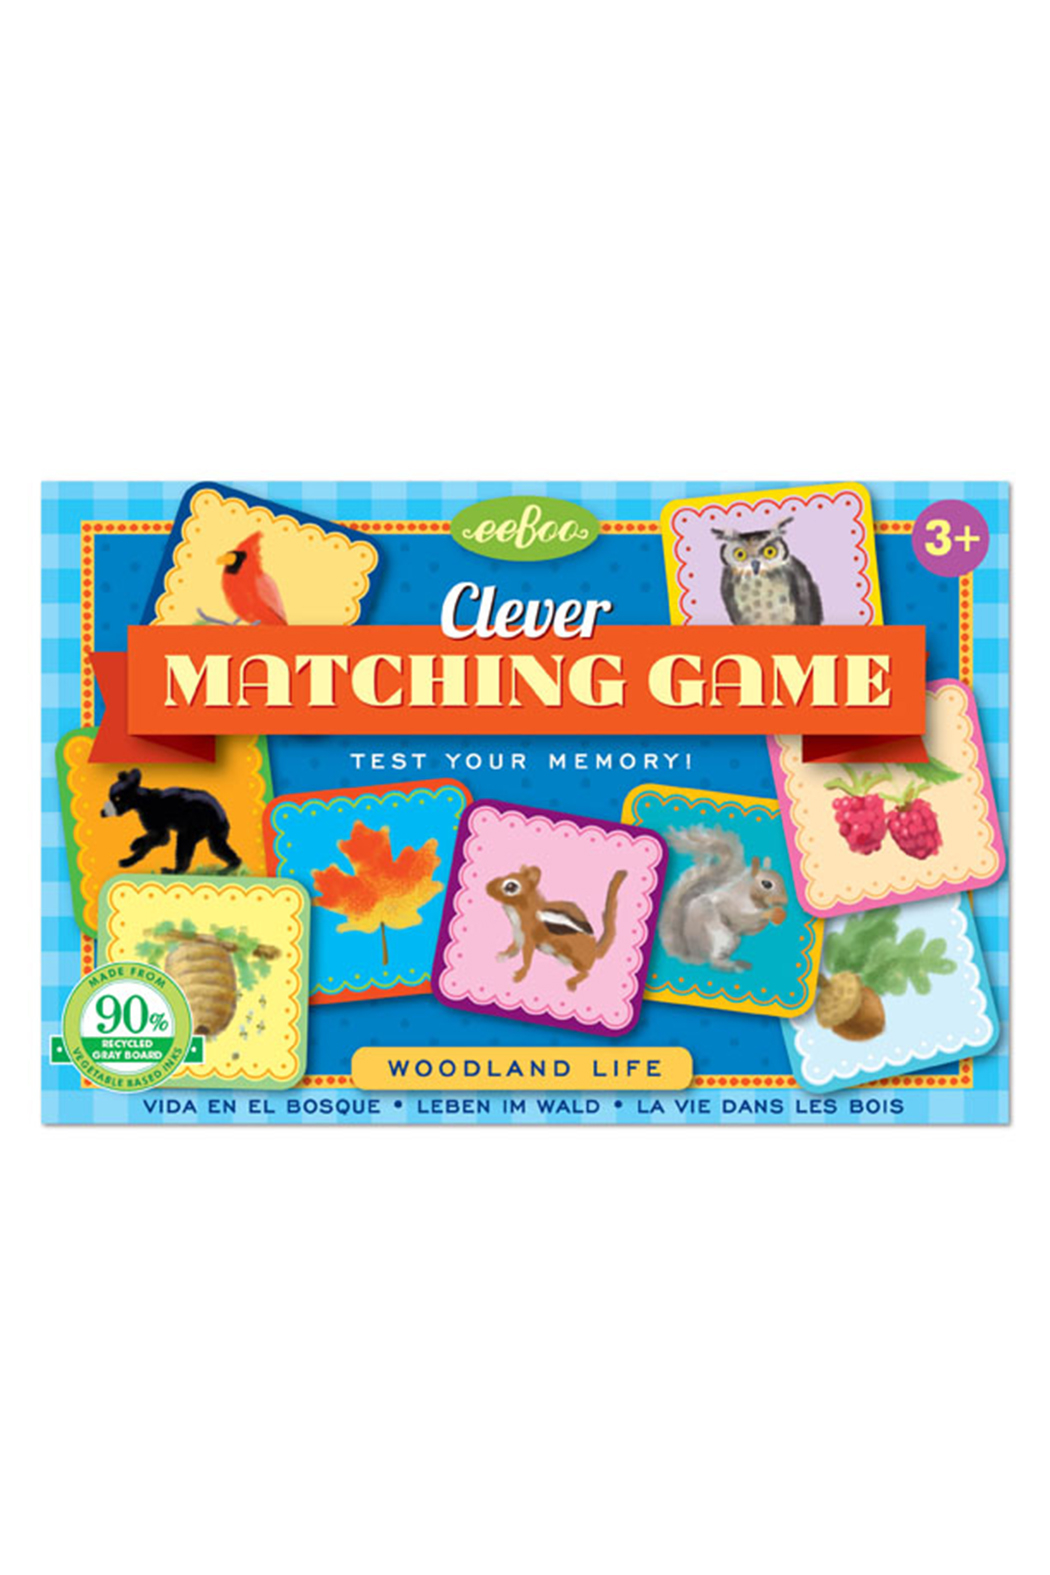 Eeboo Clever Matching Game Woodland Life - Main Image